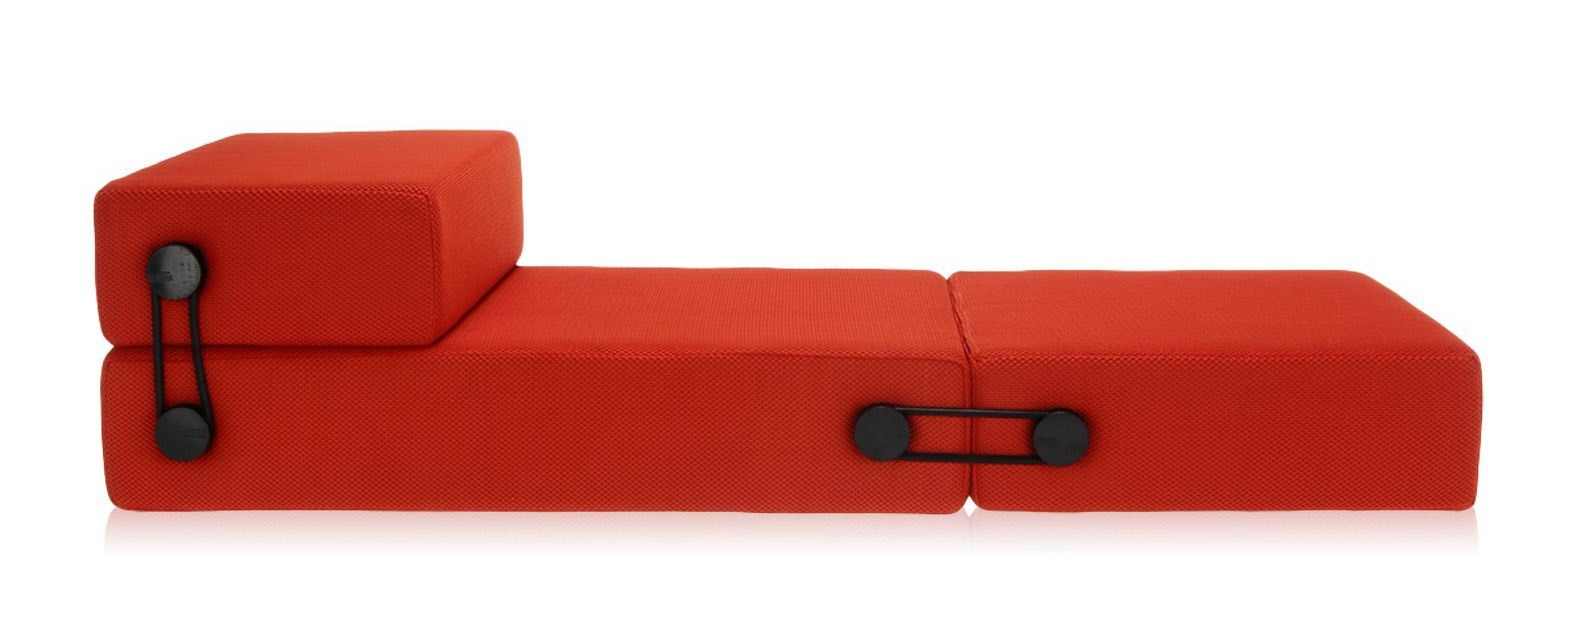 Kartell Trix Transformable Seat